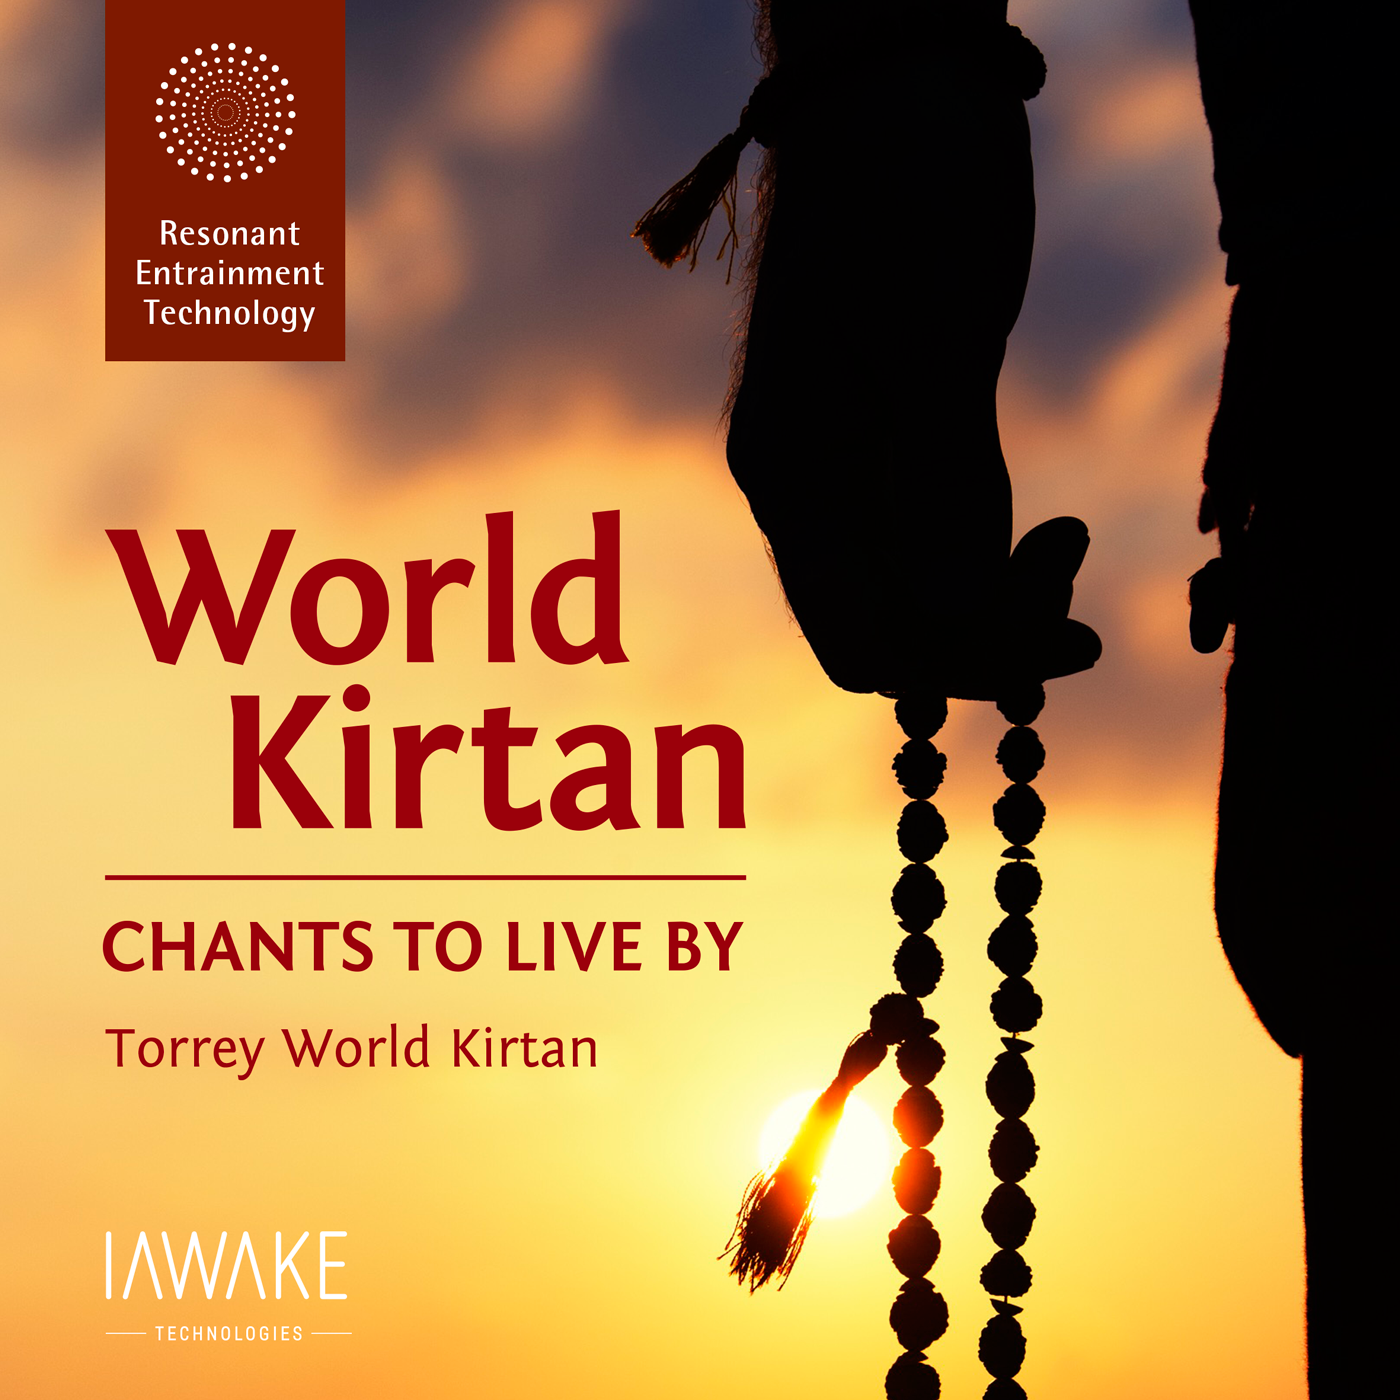 World Kirtan